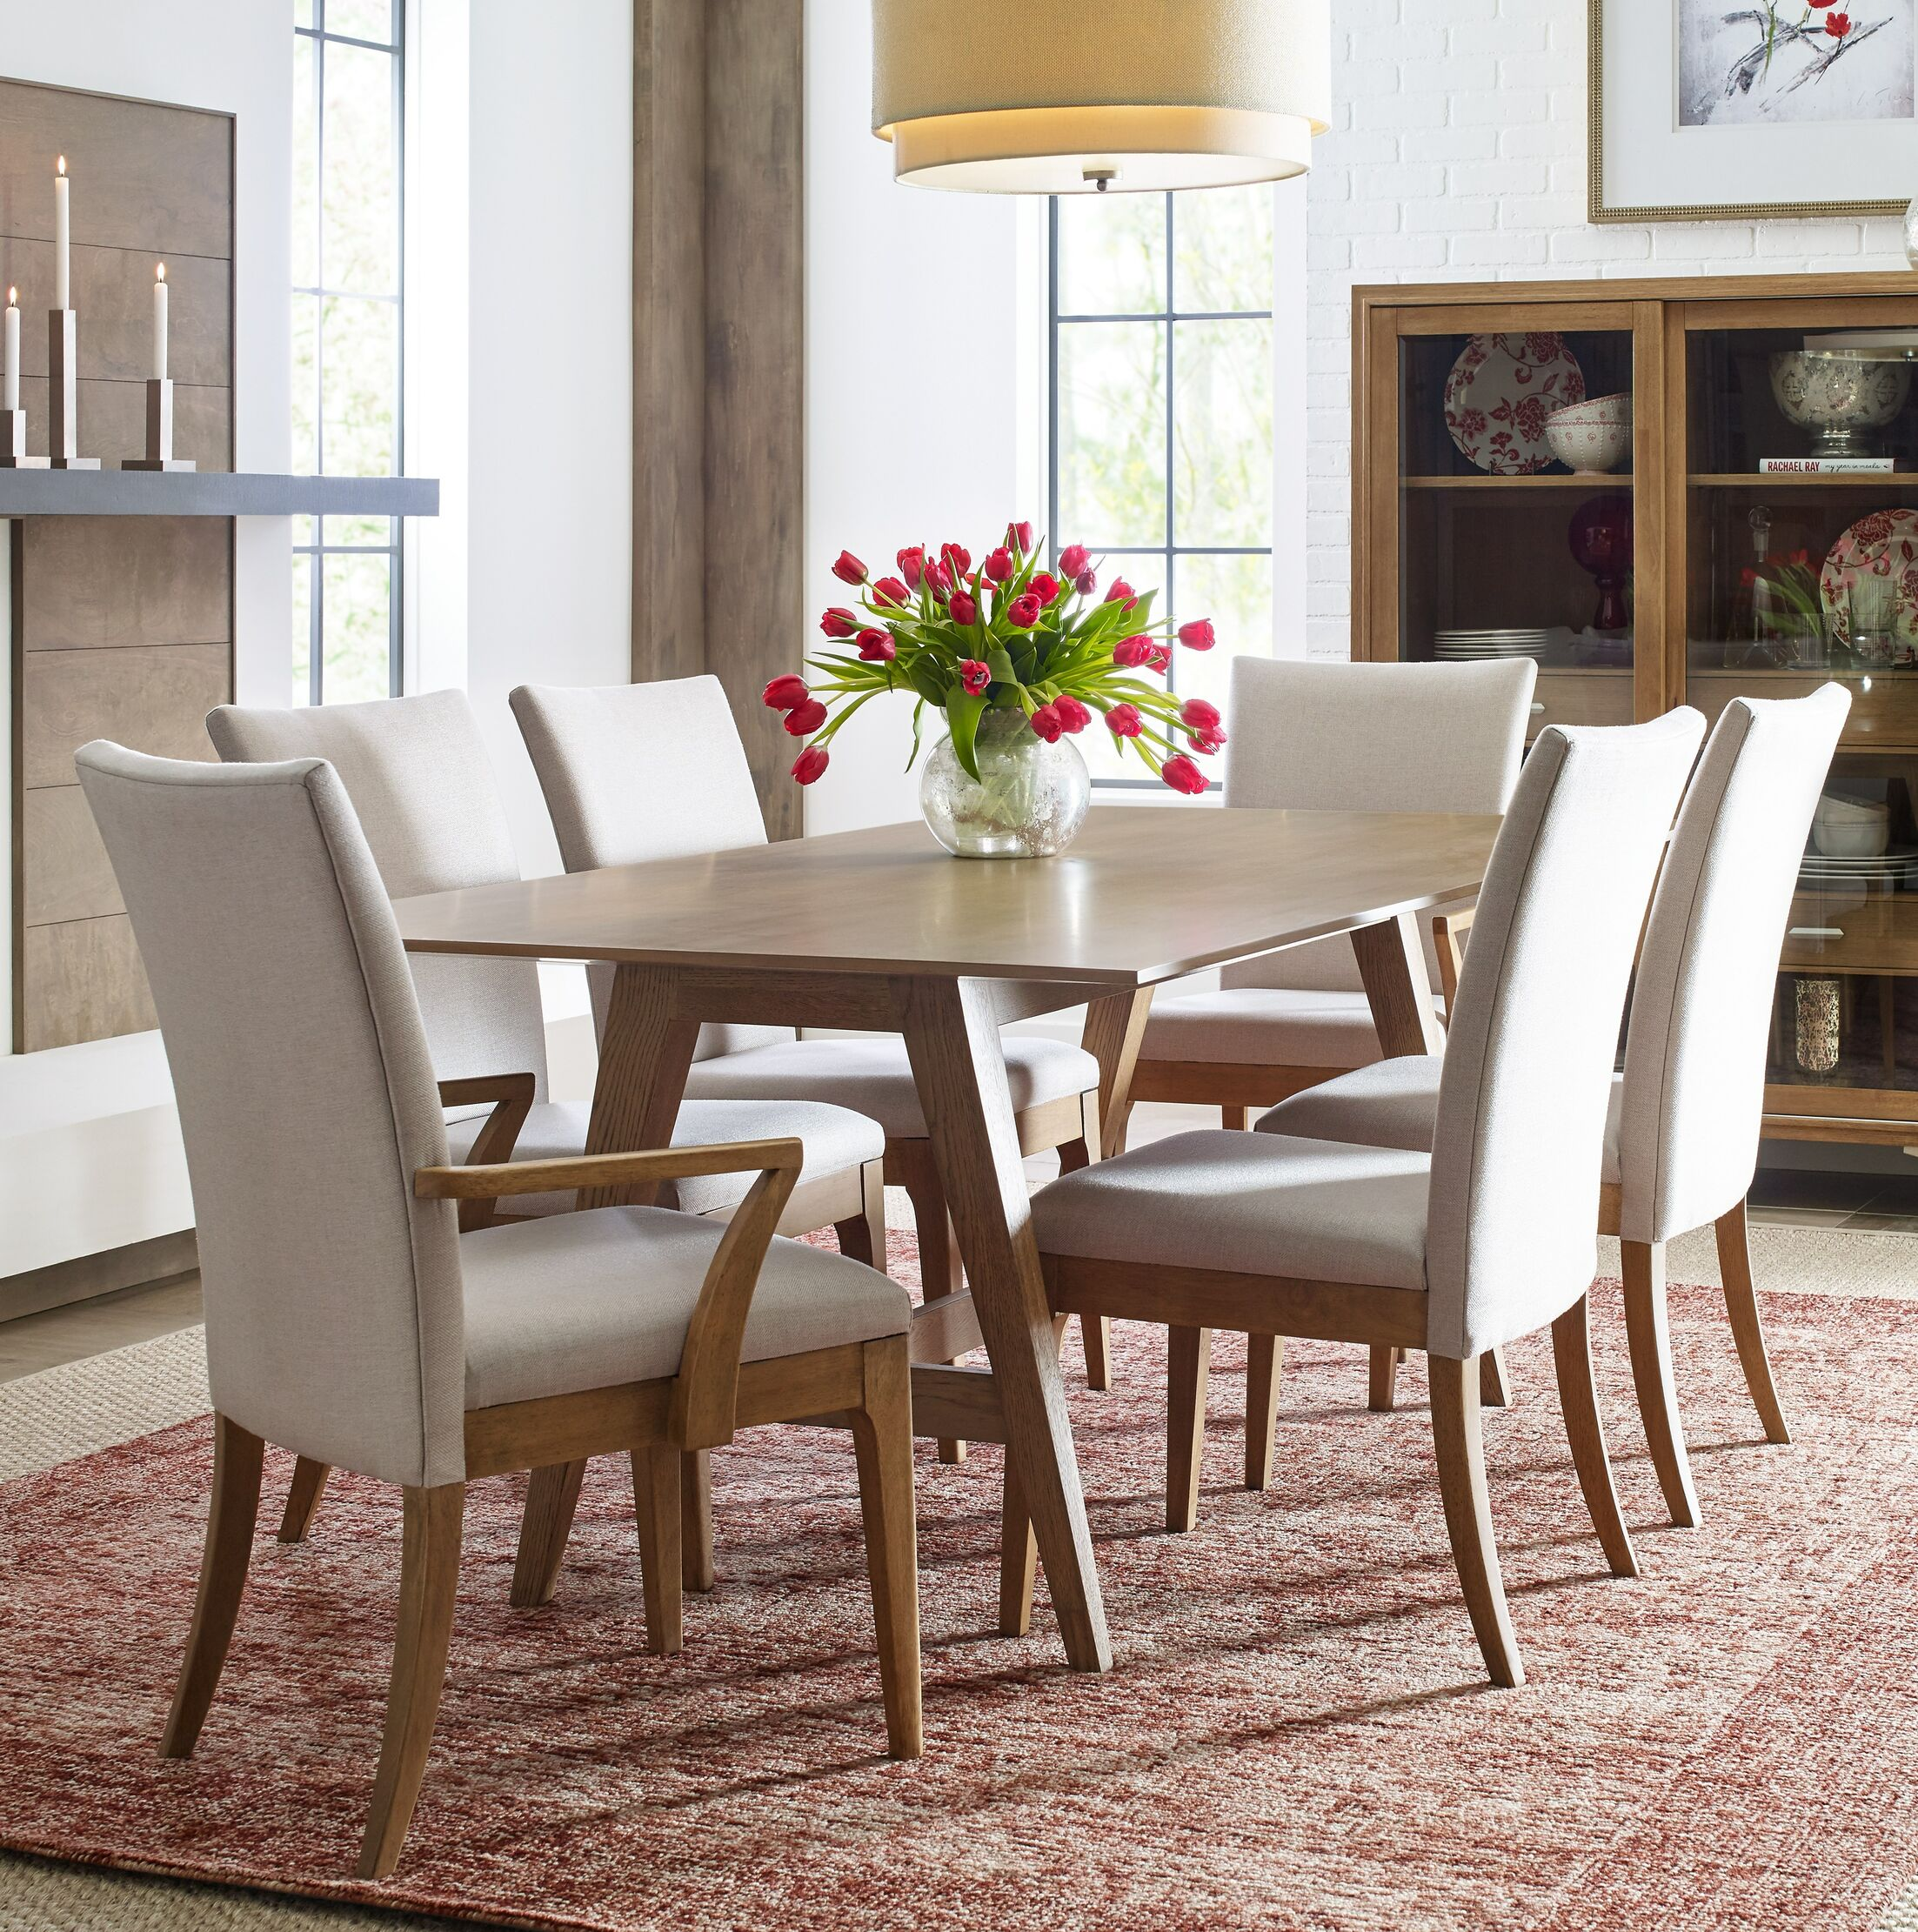 Dining Table Sets Hygge 7 Piece Dining Set